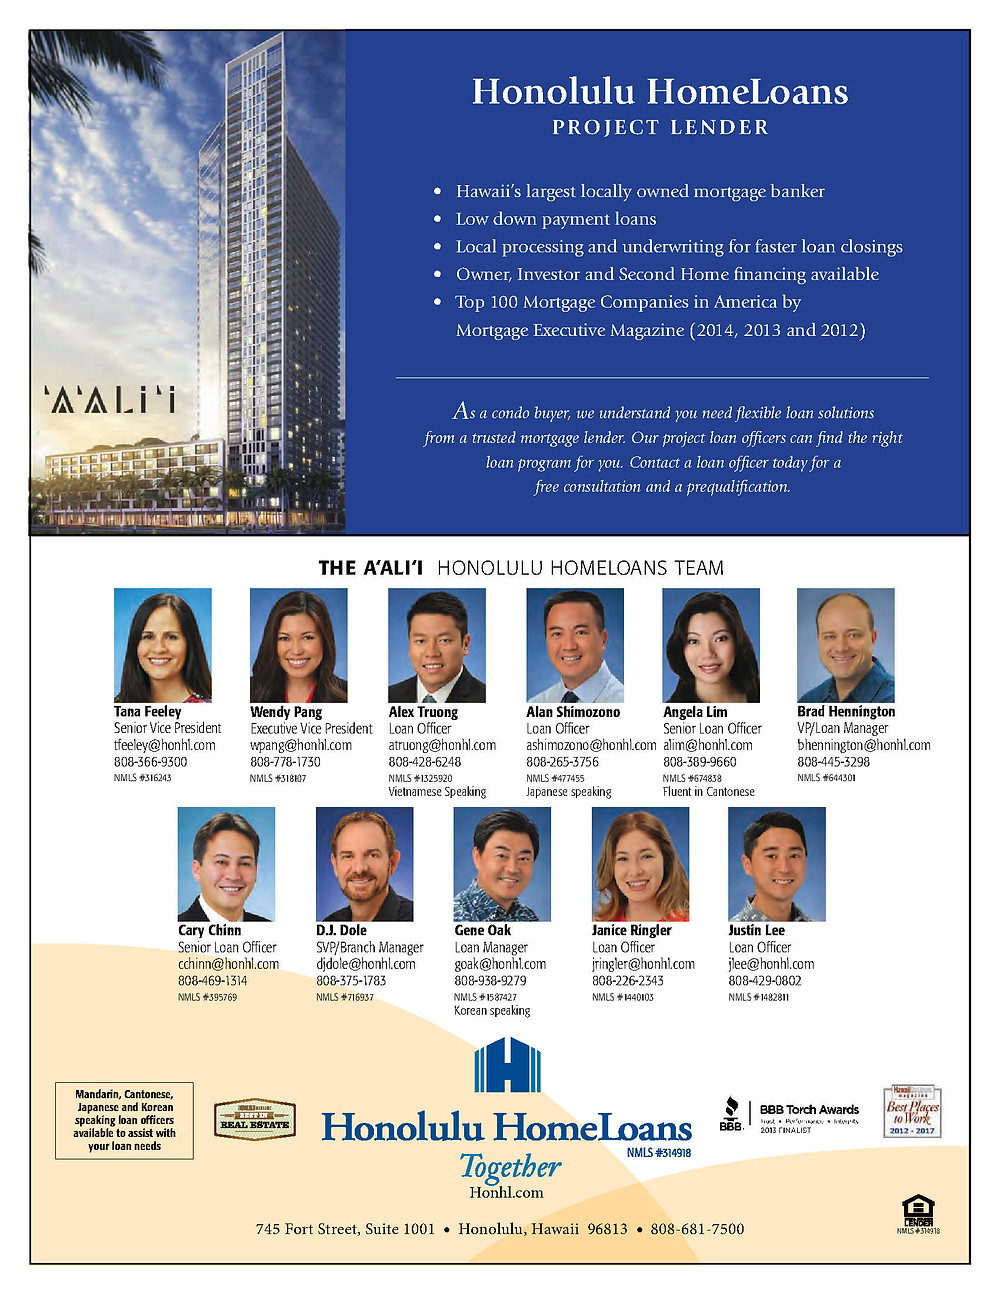 Honolulu HomeLoans